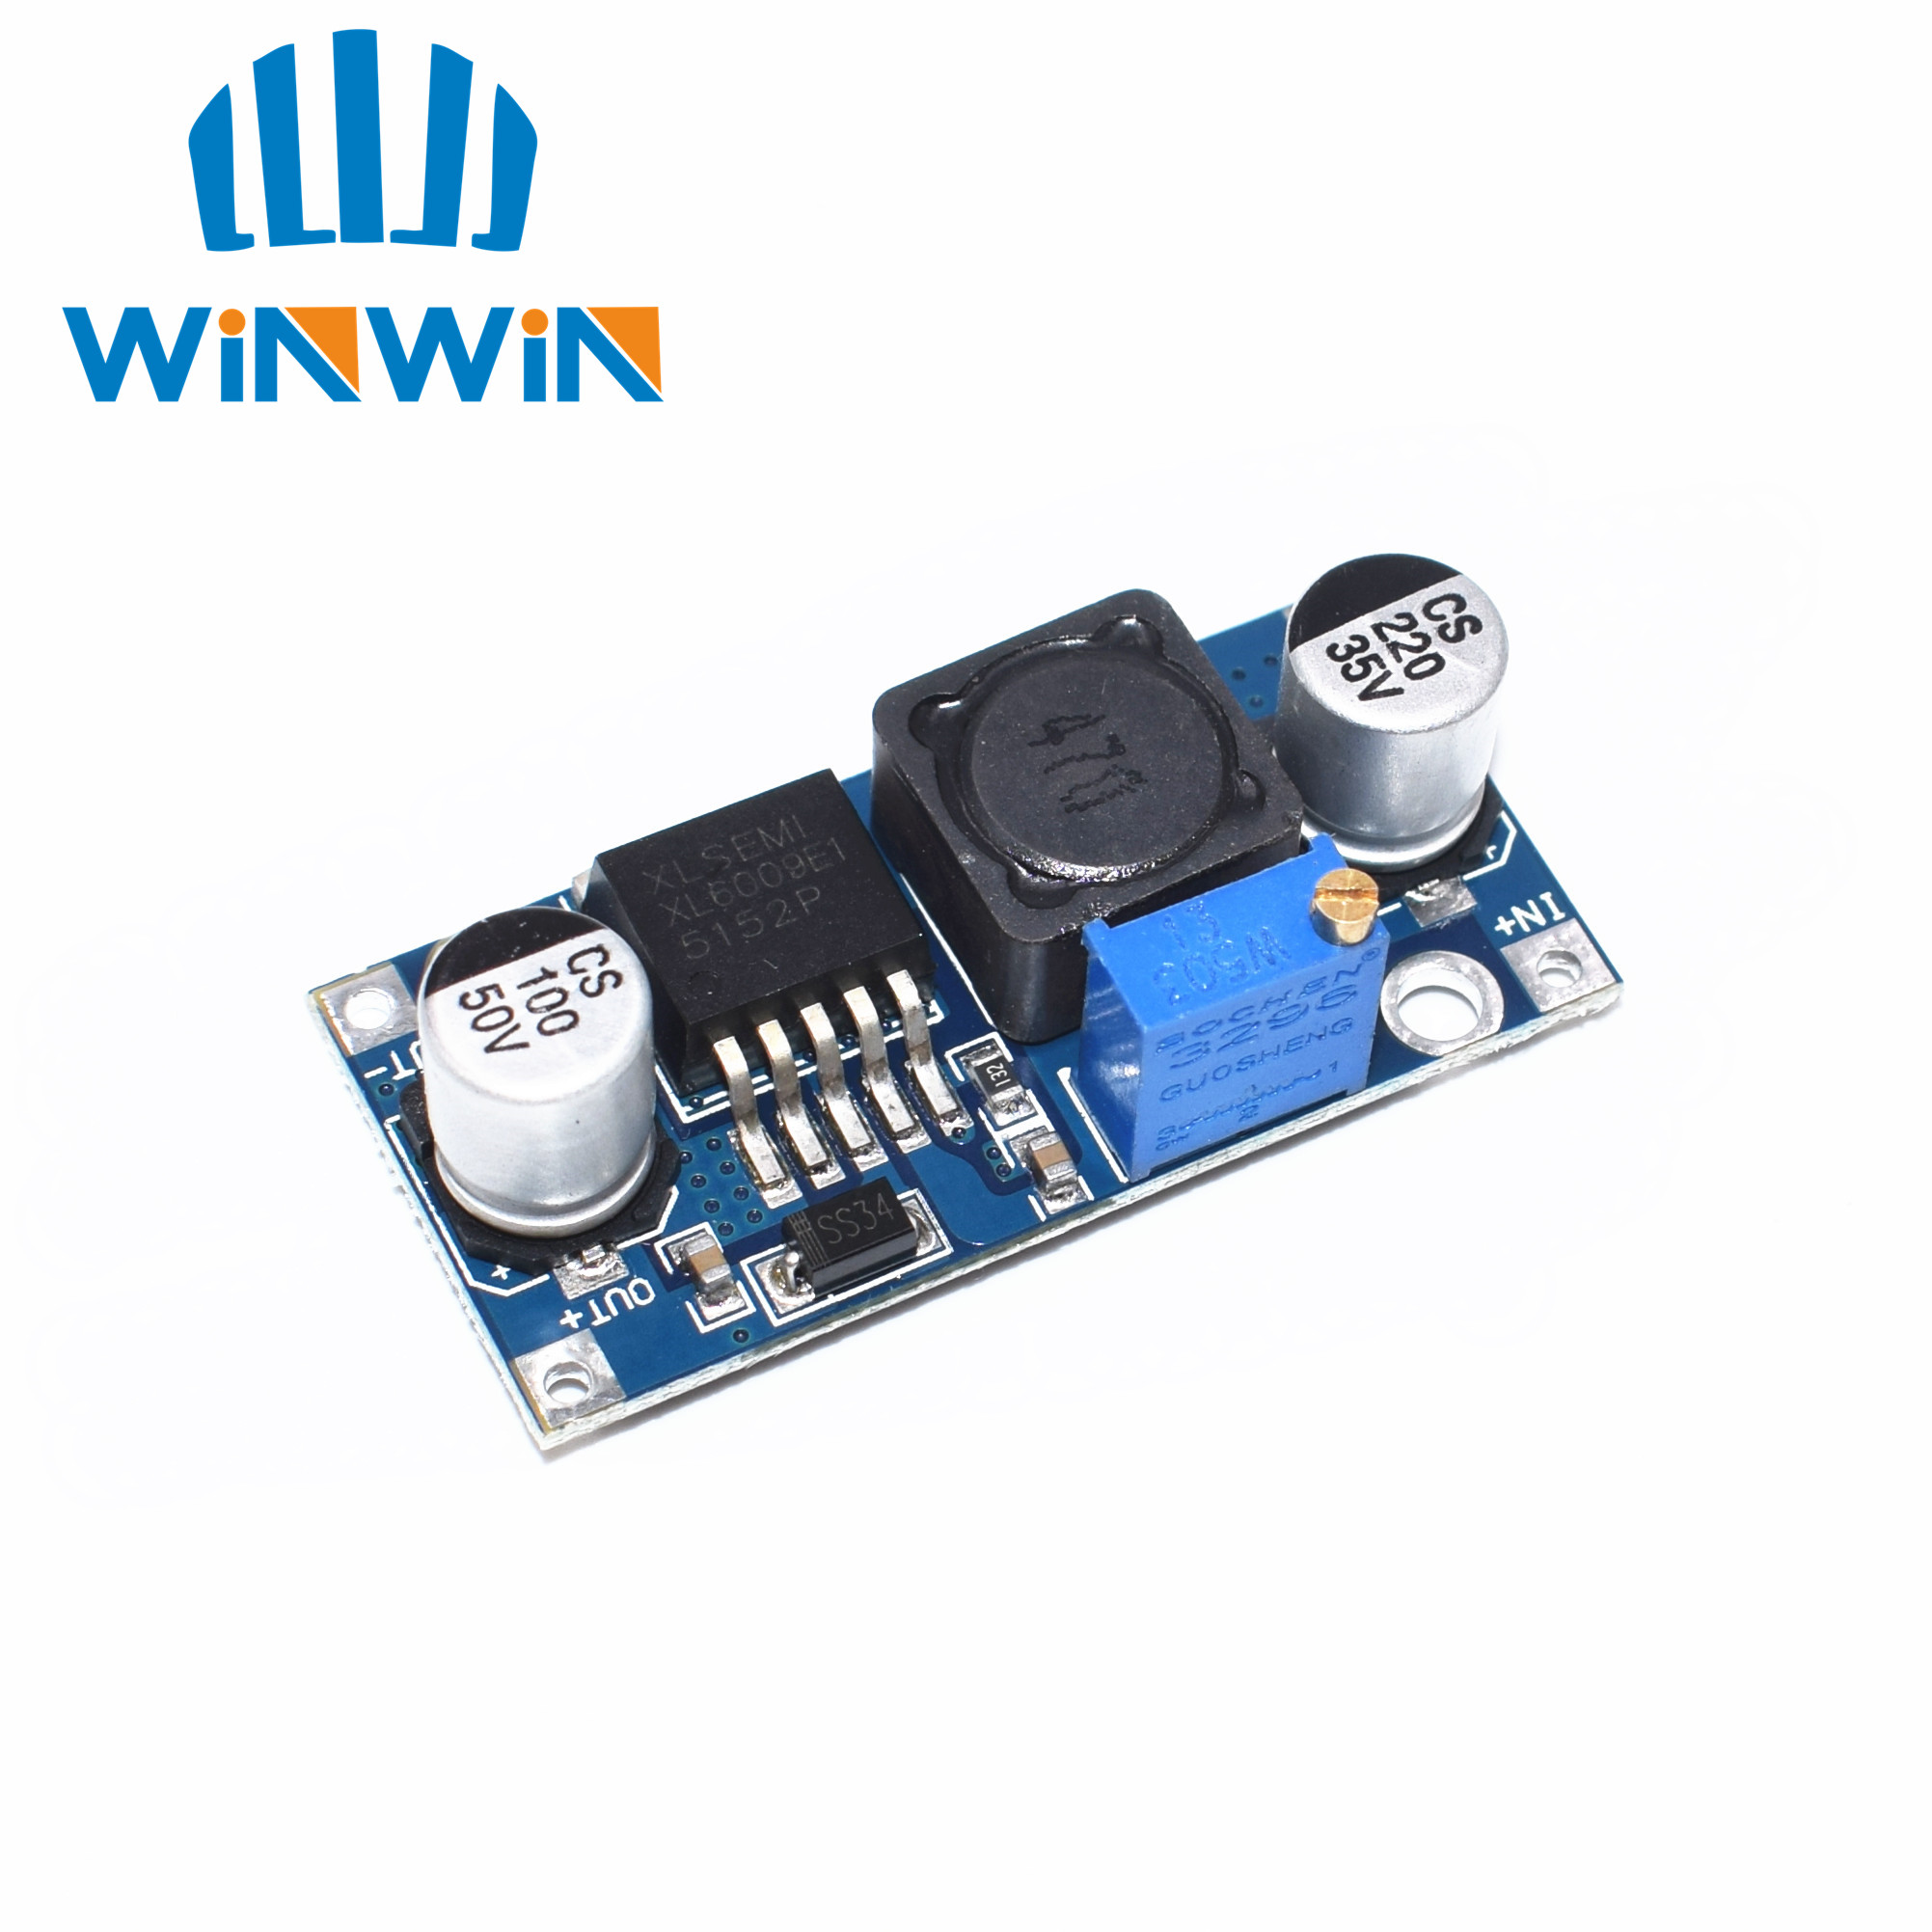 Active Components Back To Search Resultselectronic Components & Supplies Glorious 5pcs/lot Dc-dc Module Power Supply Module Xl6009 Can Raise Pressure Booster Module Super Lm2577 Dc-dc Booster Step-up Module Suitable For Men And Women Of All Ages In All Seasons